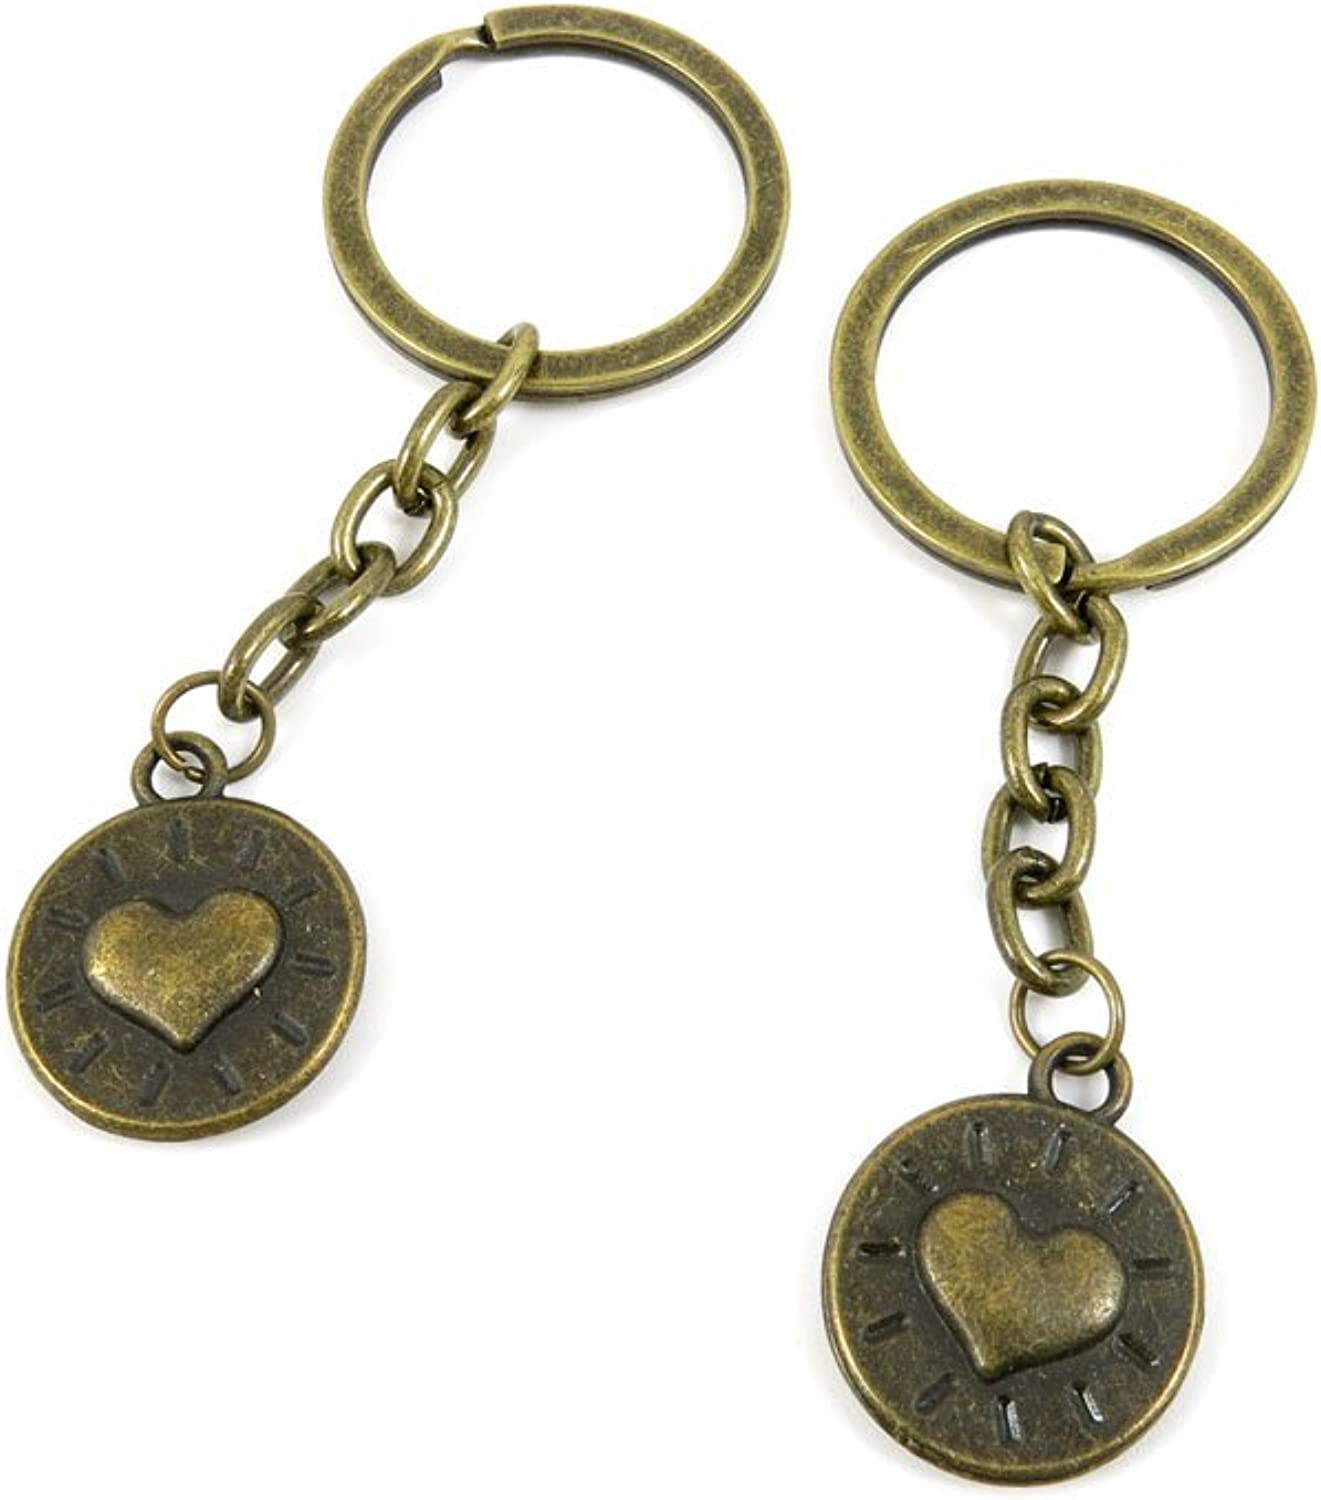 150 Pieces Fashion Jewelry Keyring Keychain Door Car Key Tag Ring Chain Supplier Supply Wholesale Bulk Lots K5TG5 Heart Sign Tag